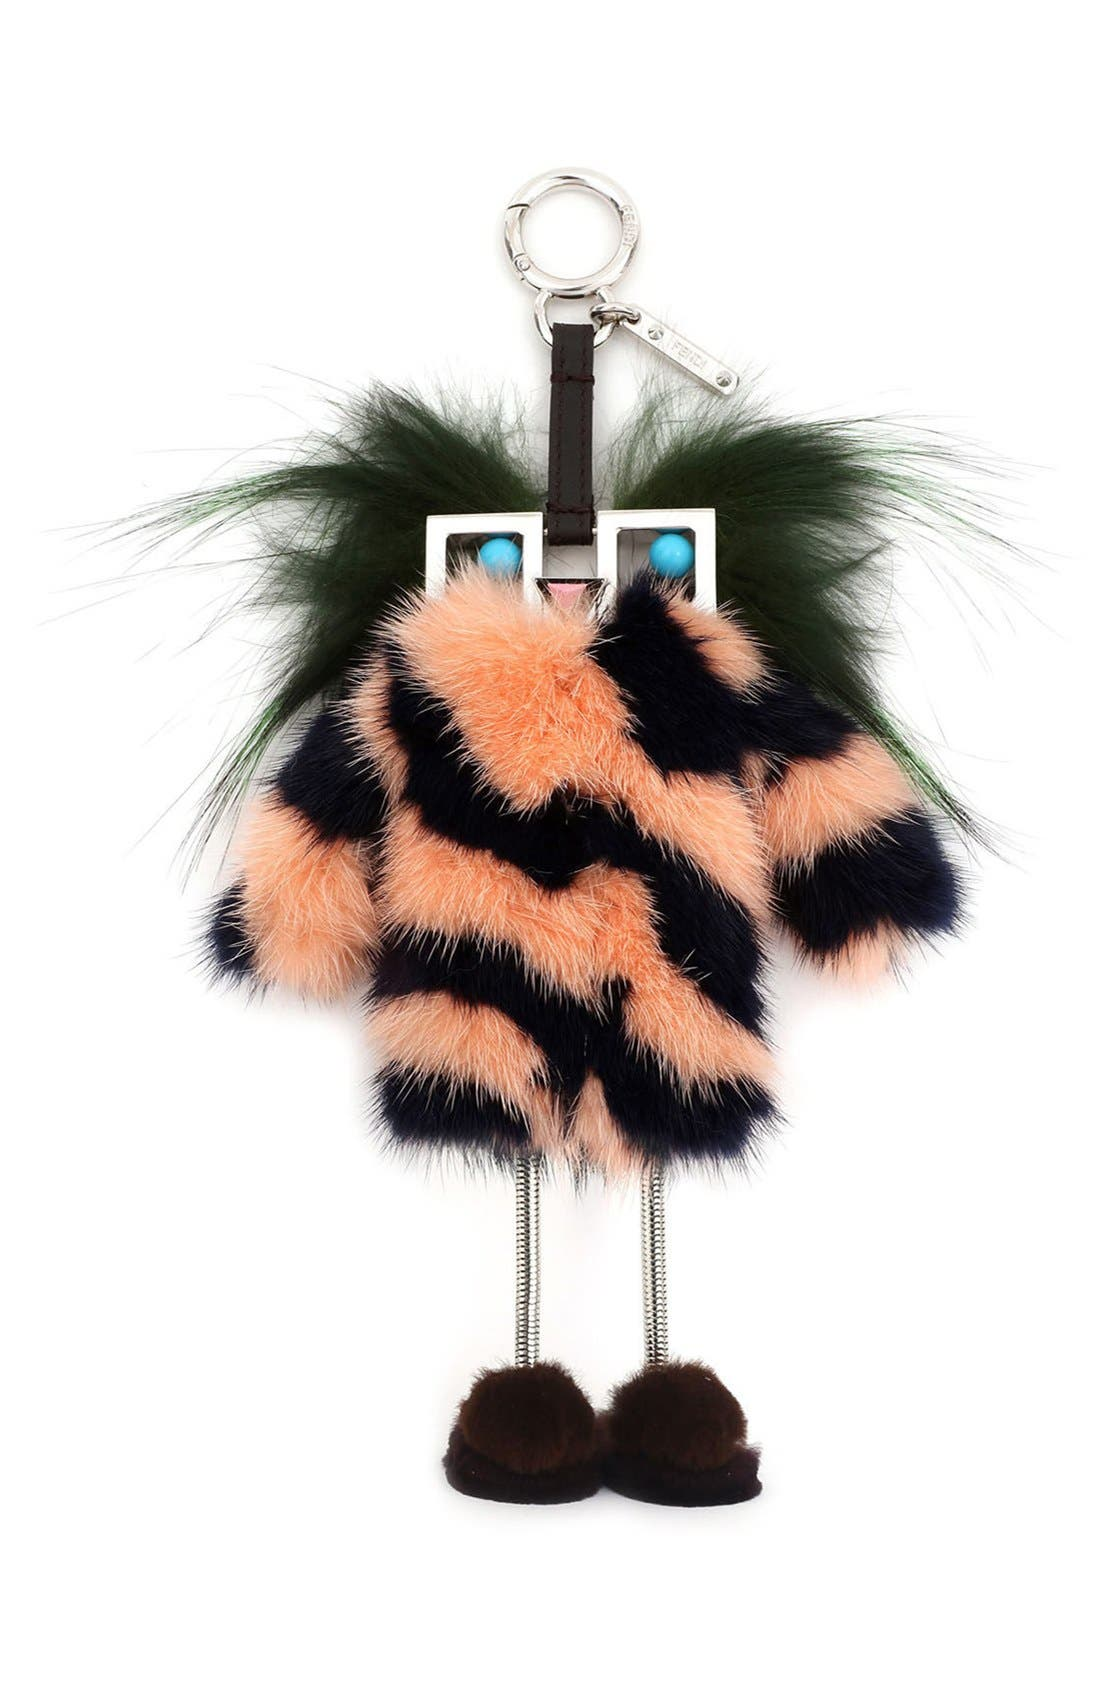 Alternate Image 1 Selected - Fendi Faces Hypnoteyes Genuine Fur Bag Charm with Slippers